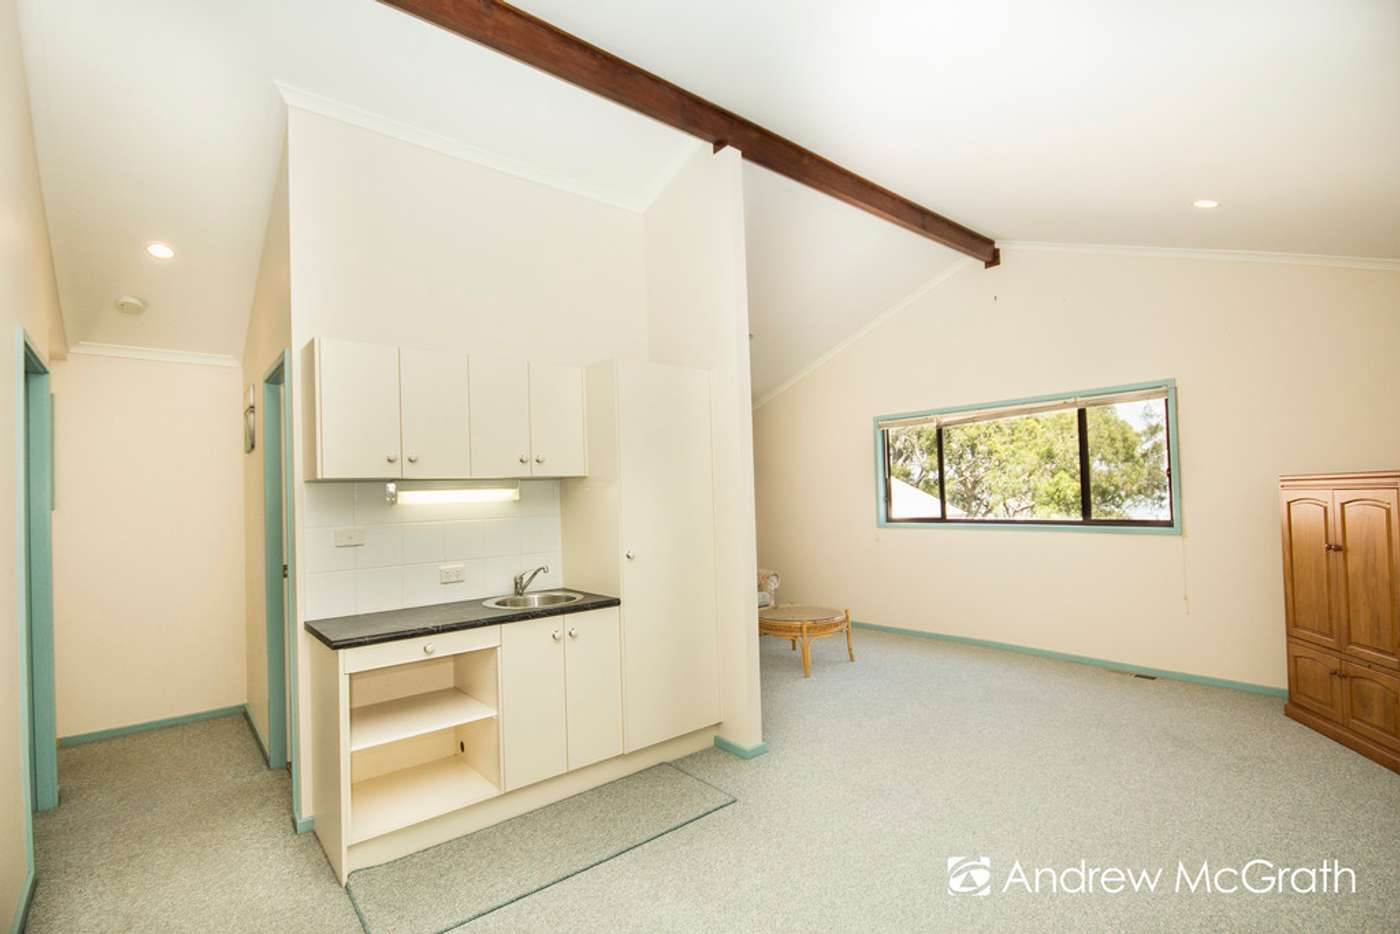 Fifth view of Homely house listing, 7 Branter Road, Nords Wharf NSW 2281